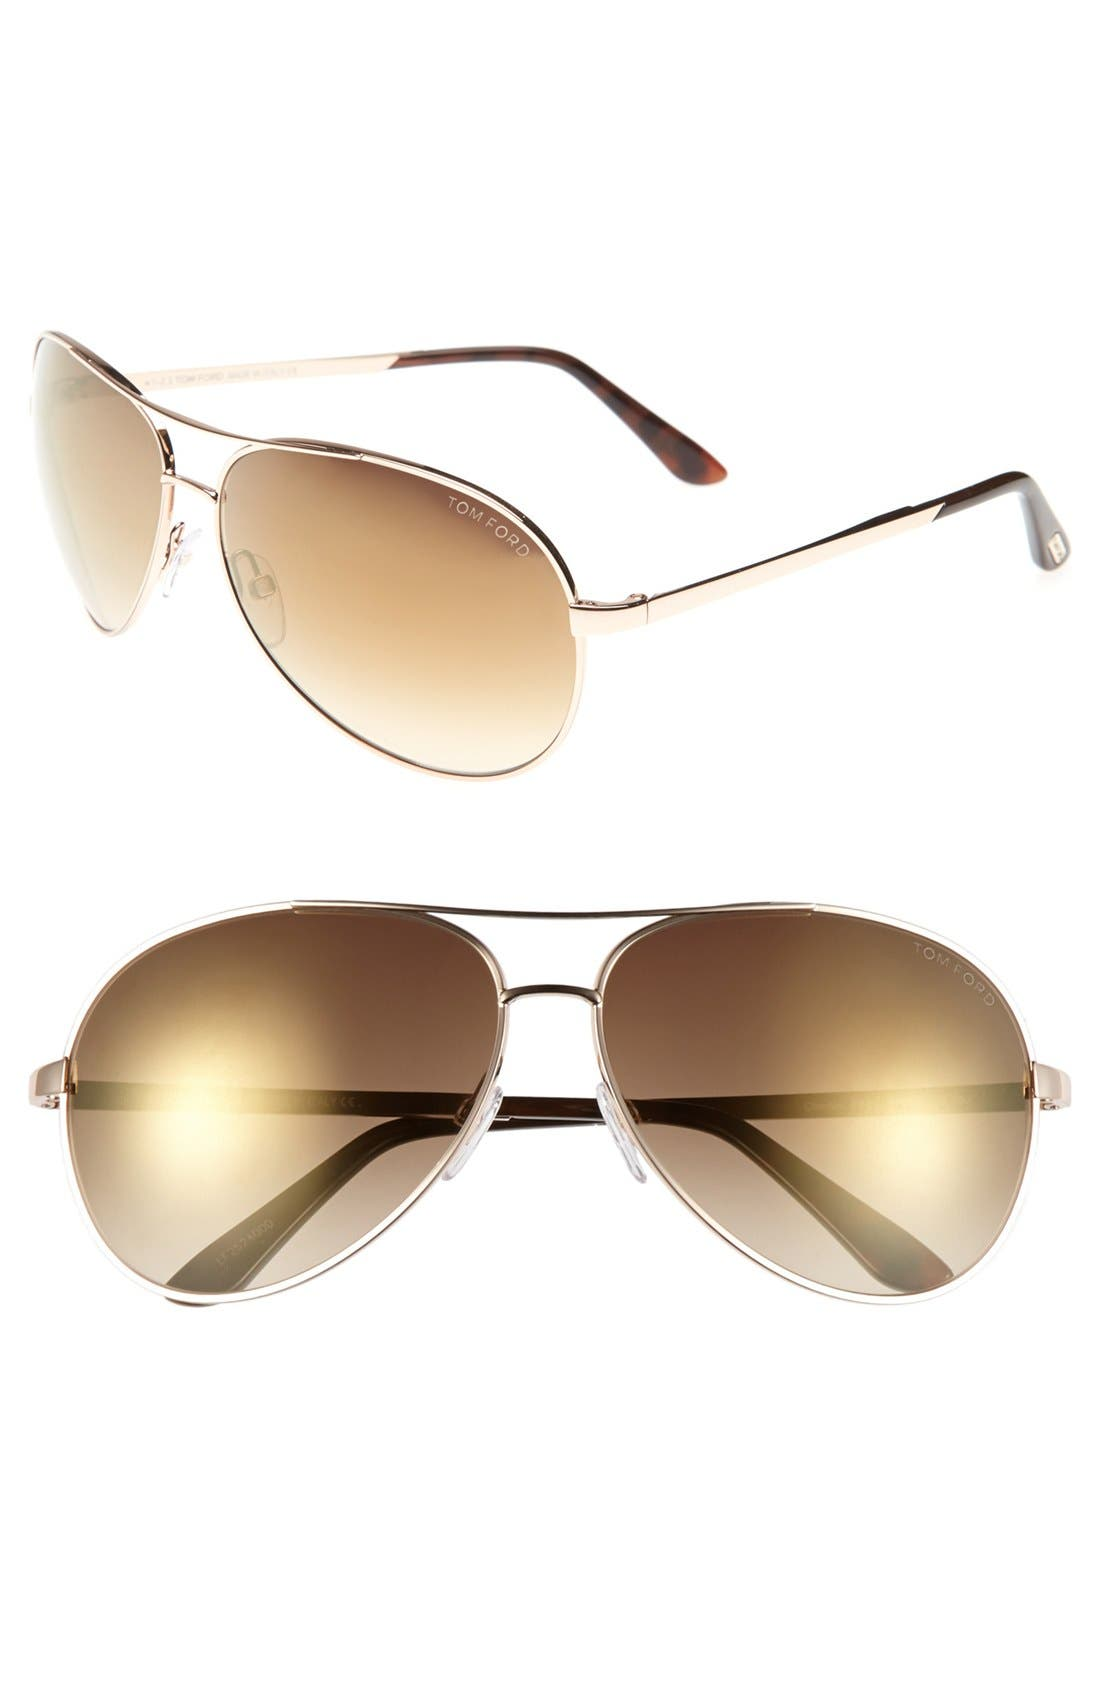 Alternate Image 1 Selected - Tom Ford 'Charles' 62mm Sunglasses